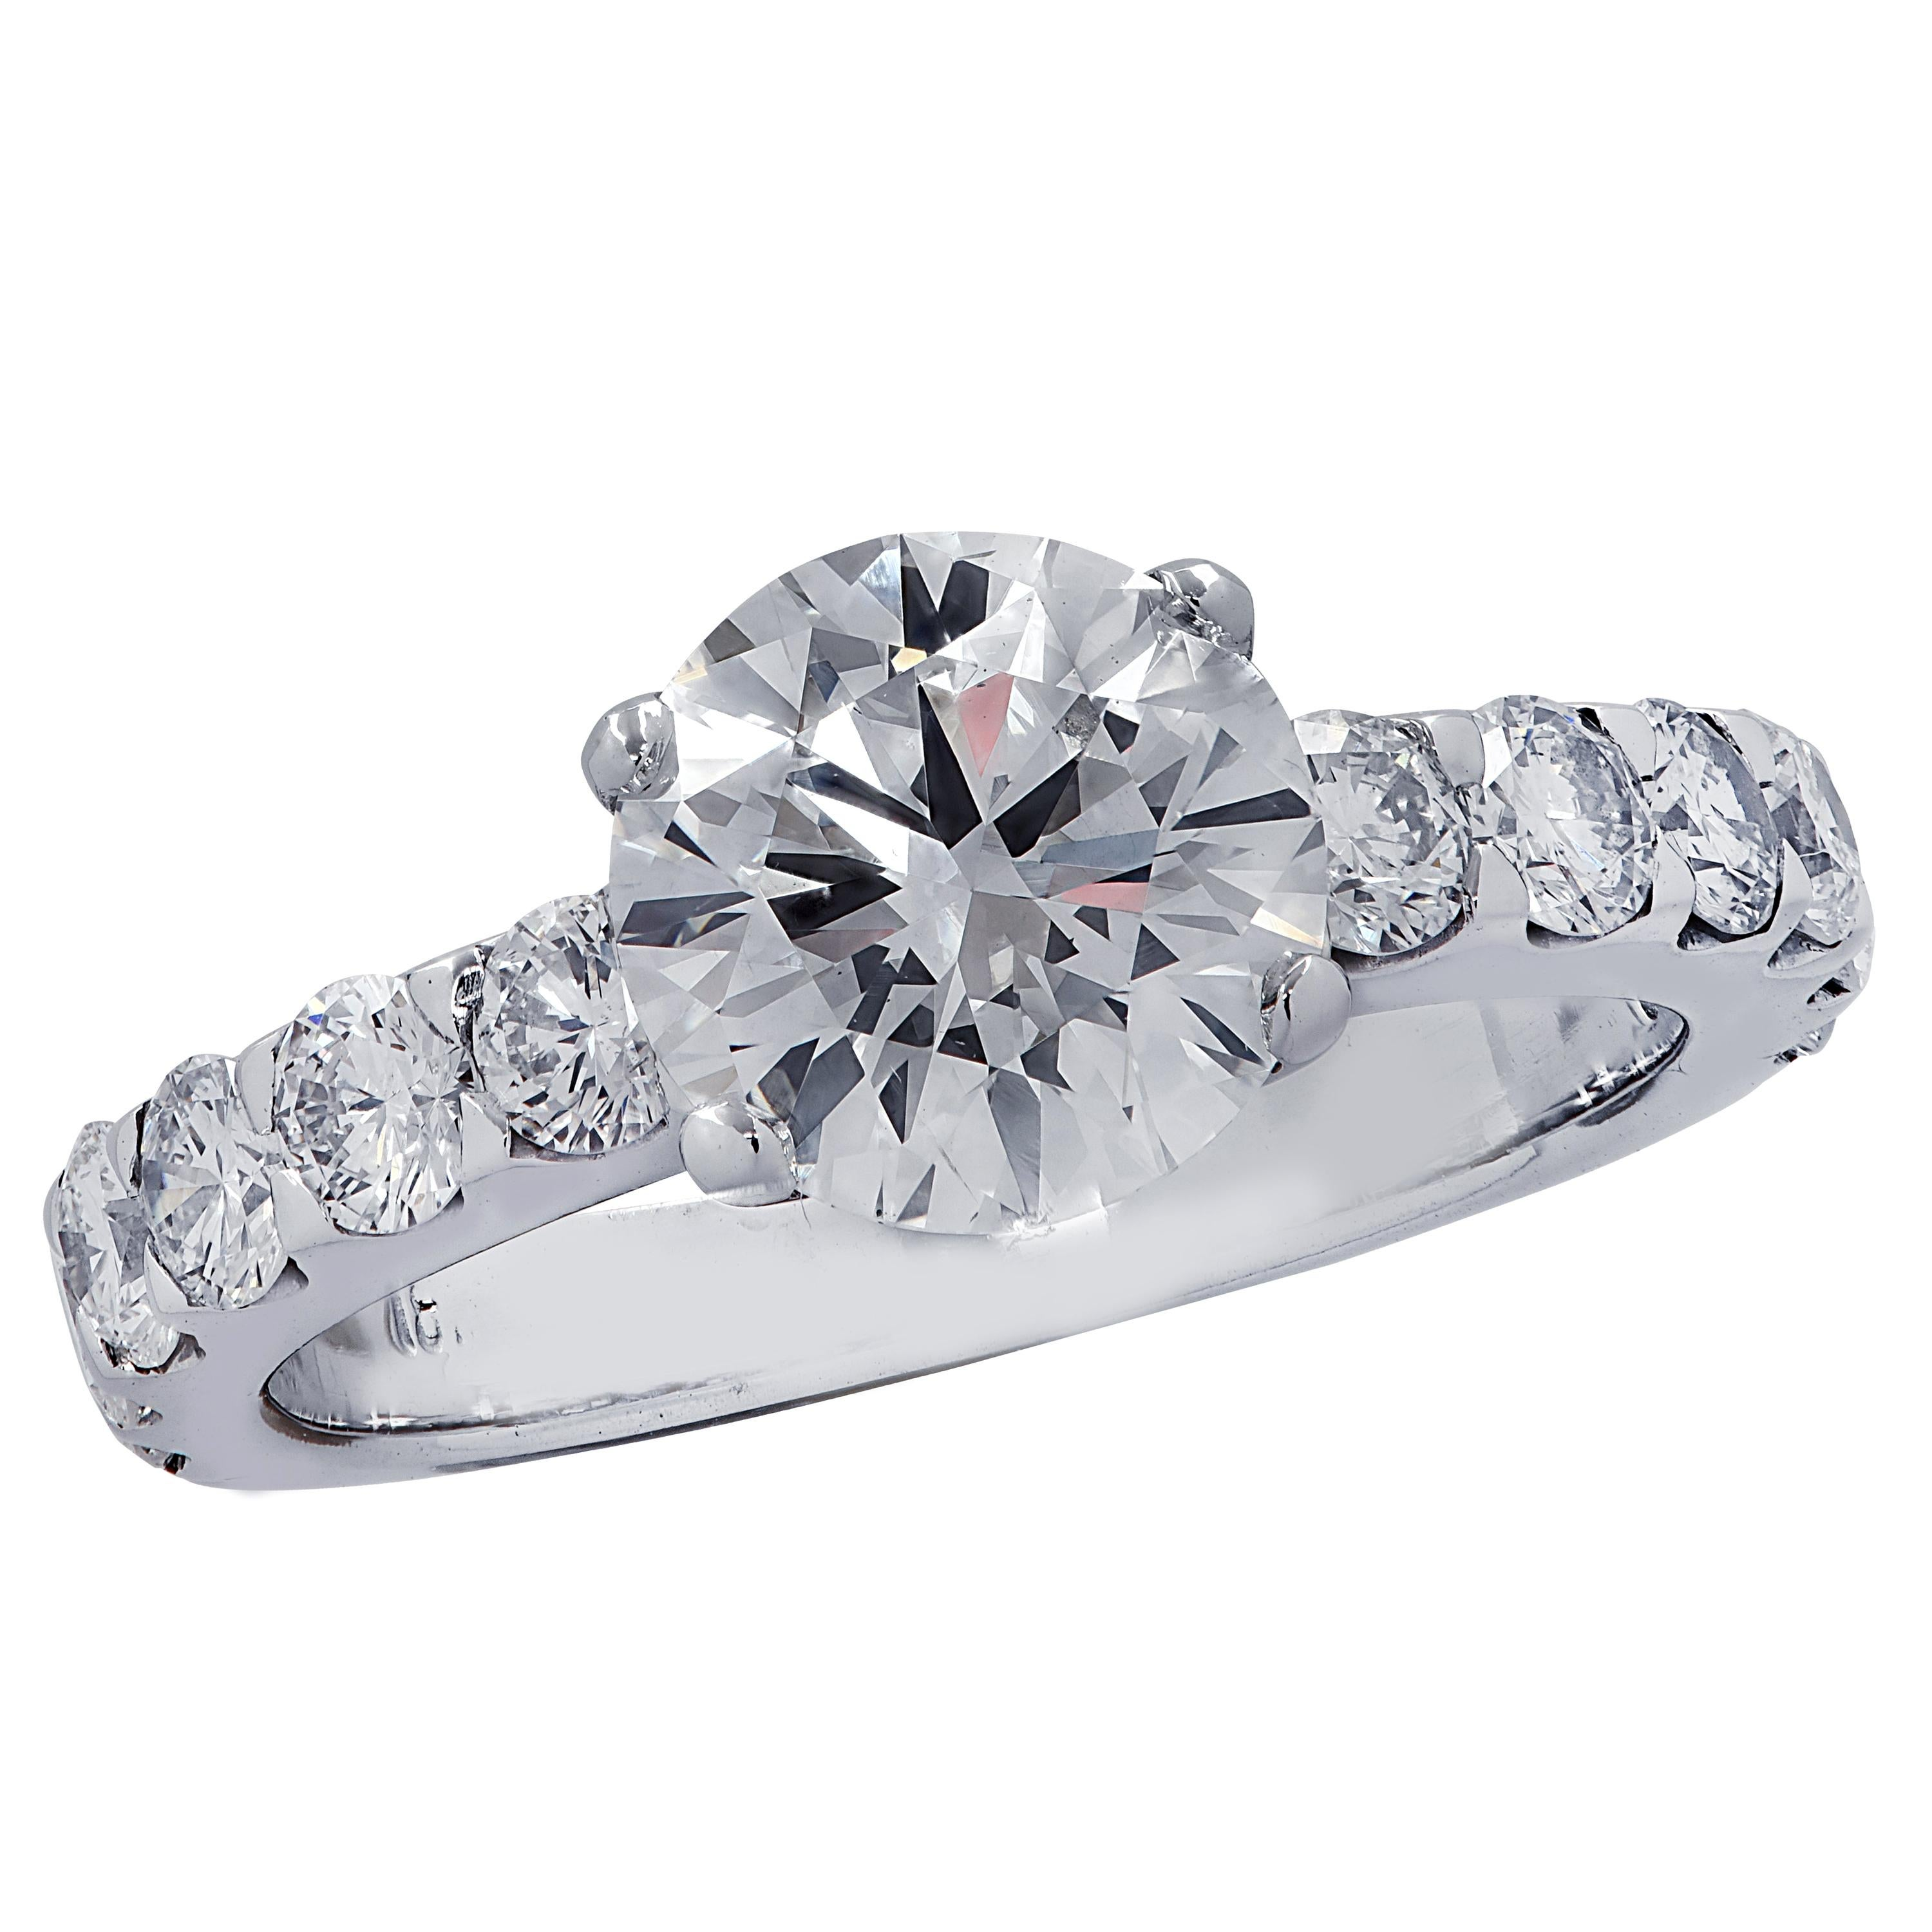 6460db1017ae6 Antique and Vintage Rings and Diamond Rings For Sale at 1stdibs